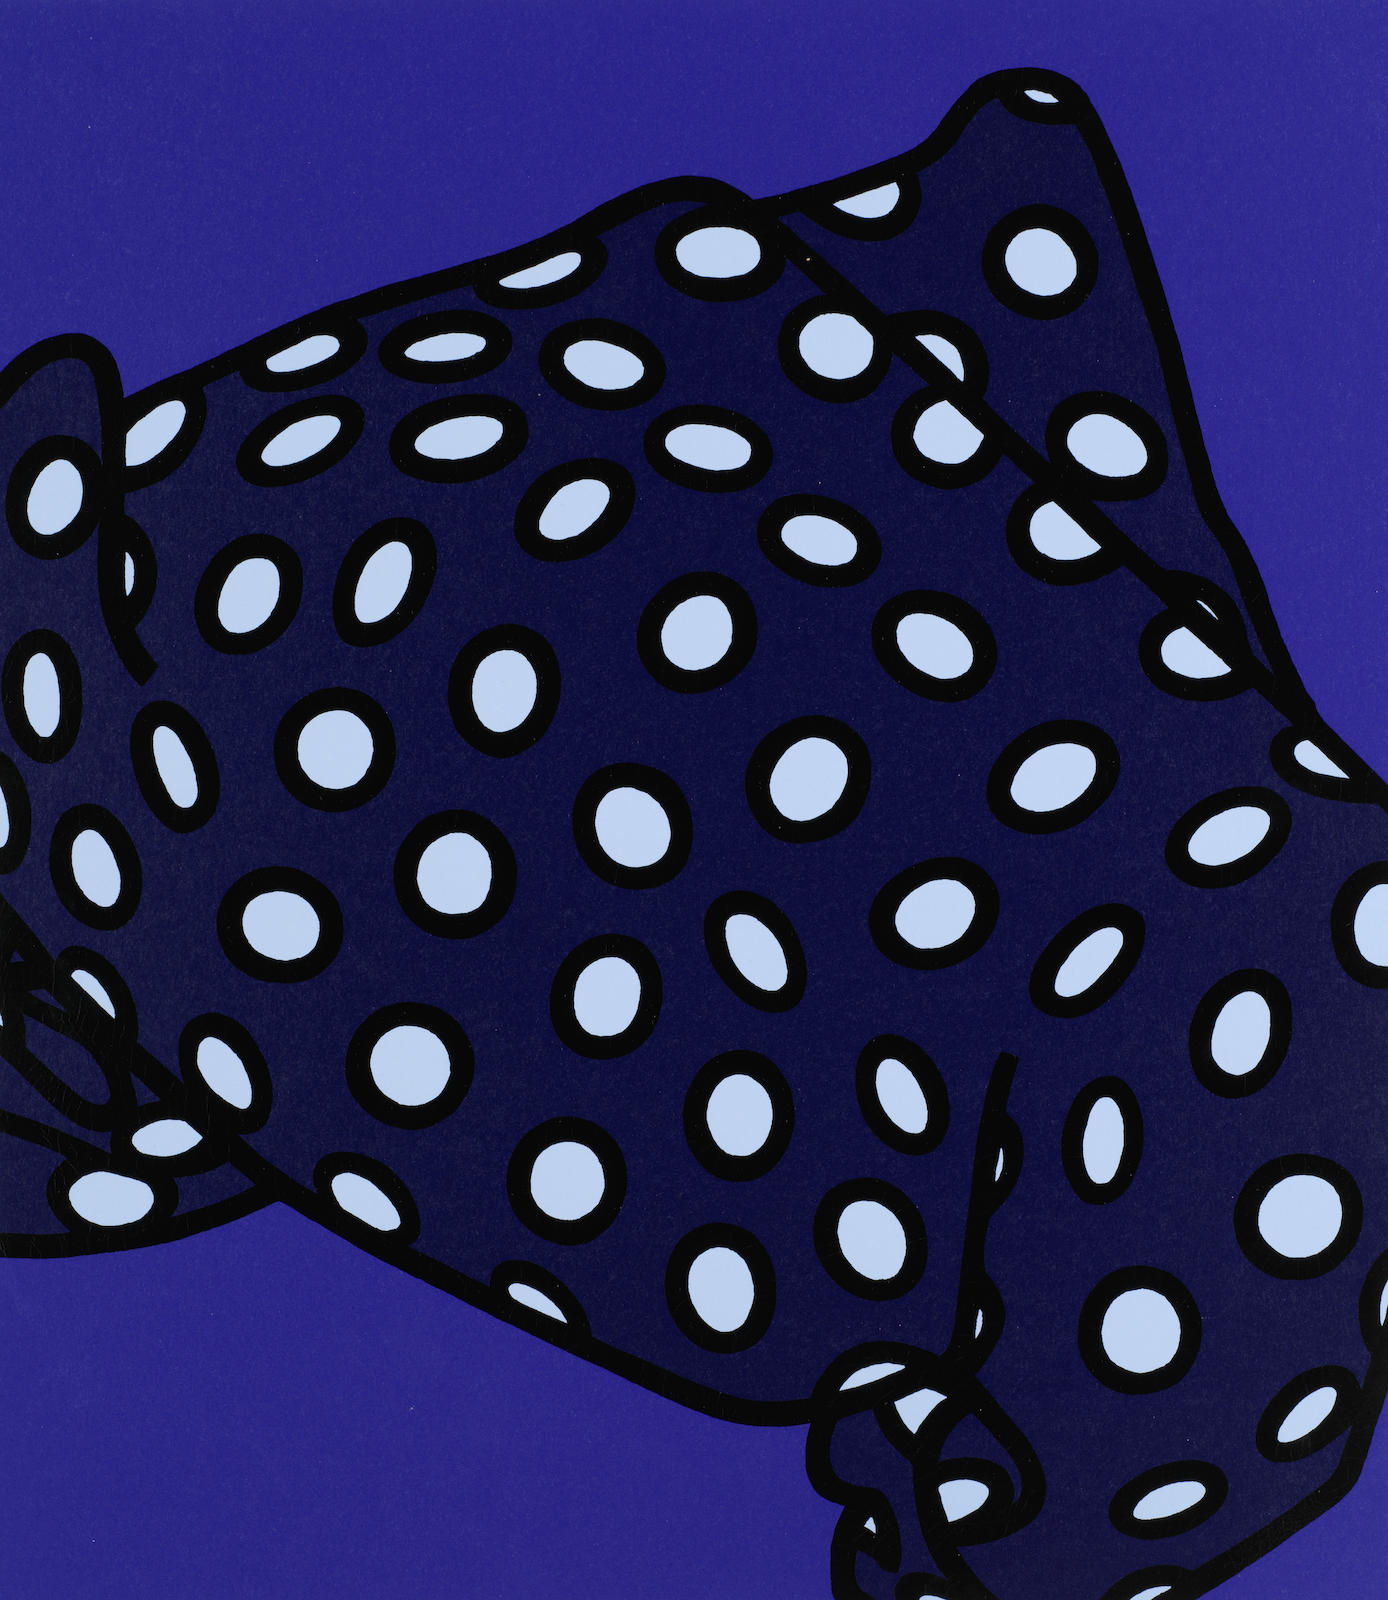 Patrick Caulfield-She'll have forgotten her scarf, from 'Some Poems of Jules Laforgue'-1973